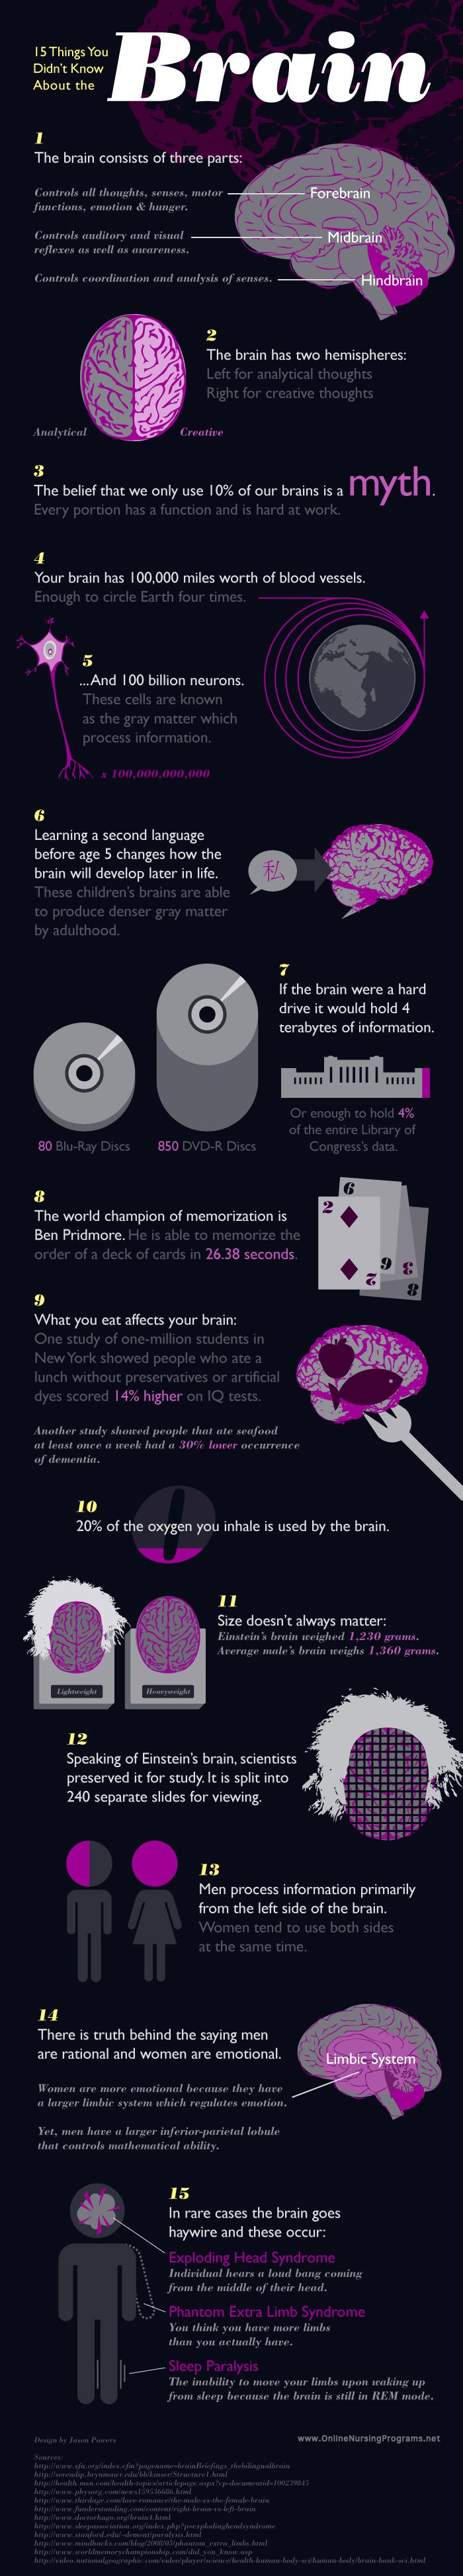 15 facts about the brain. The human brain is the most amazing and baffling organ of our body, as well as the source of many mysteries. Although the human brain makes only 2 percent of our body weight it has over 100,000 miles of blood vessels!  http://positivemed.com/2012/09/17/15-things-you-didnt-know-about-the-brain/#